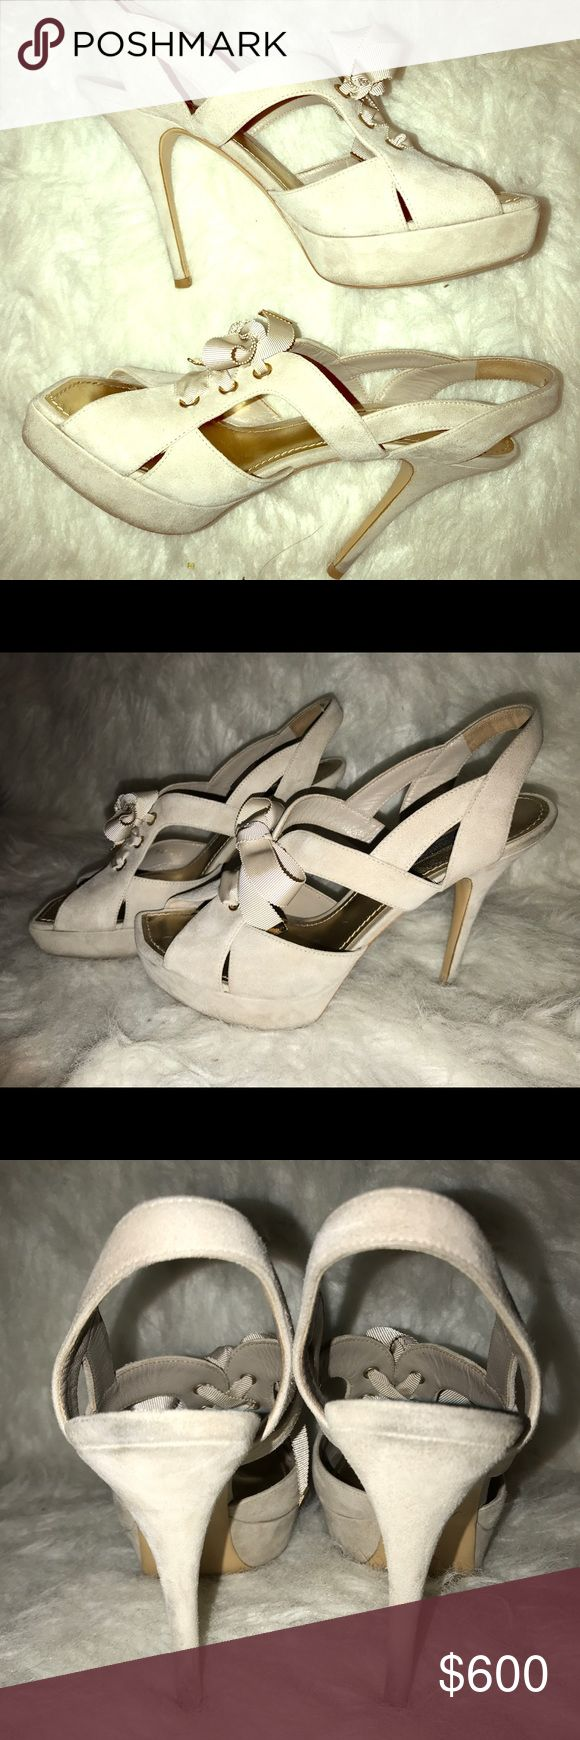 Louis Vuitton Beige Cream Suede Heels Size 38 These Louis Vuitton heels are in excellent used condition. Please feel free to reach out with any questions. Thank you! Louis Vuitton Shoes Heels